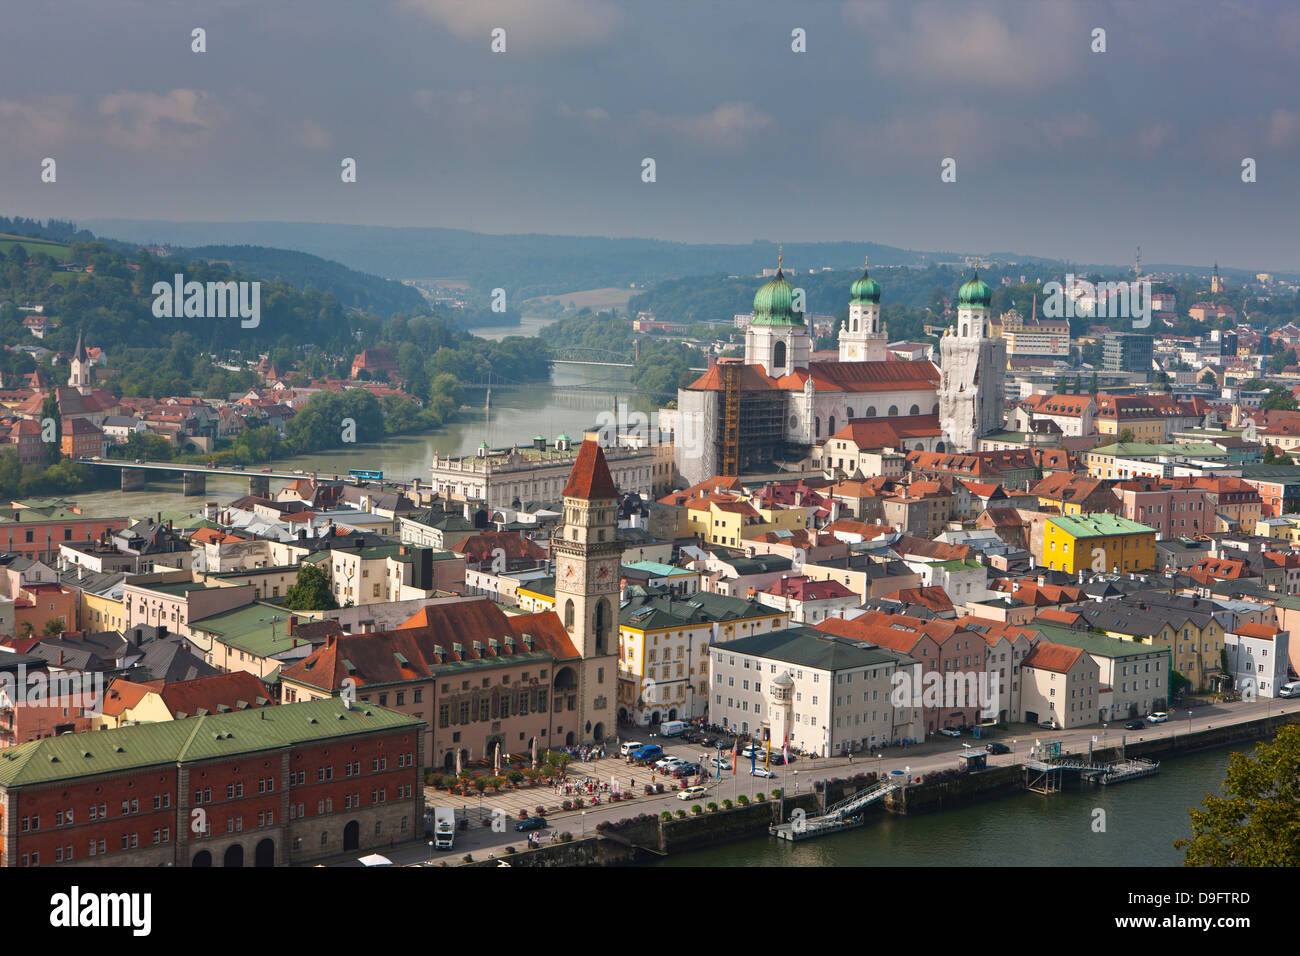 View over the River Danube and Passau, Bavaria, Germany Stock Photo